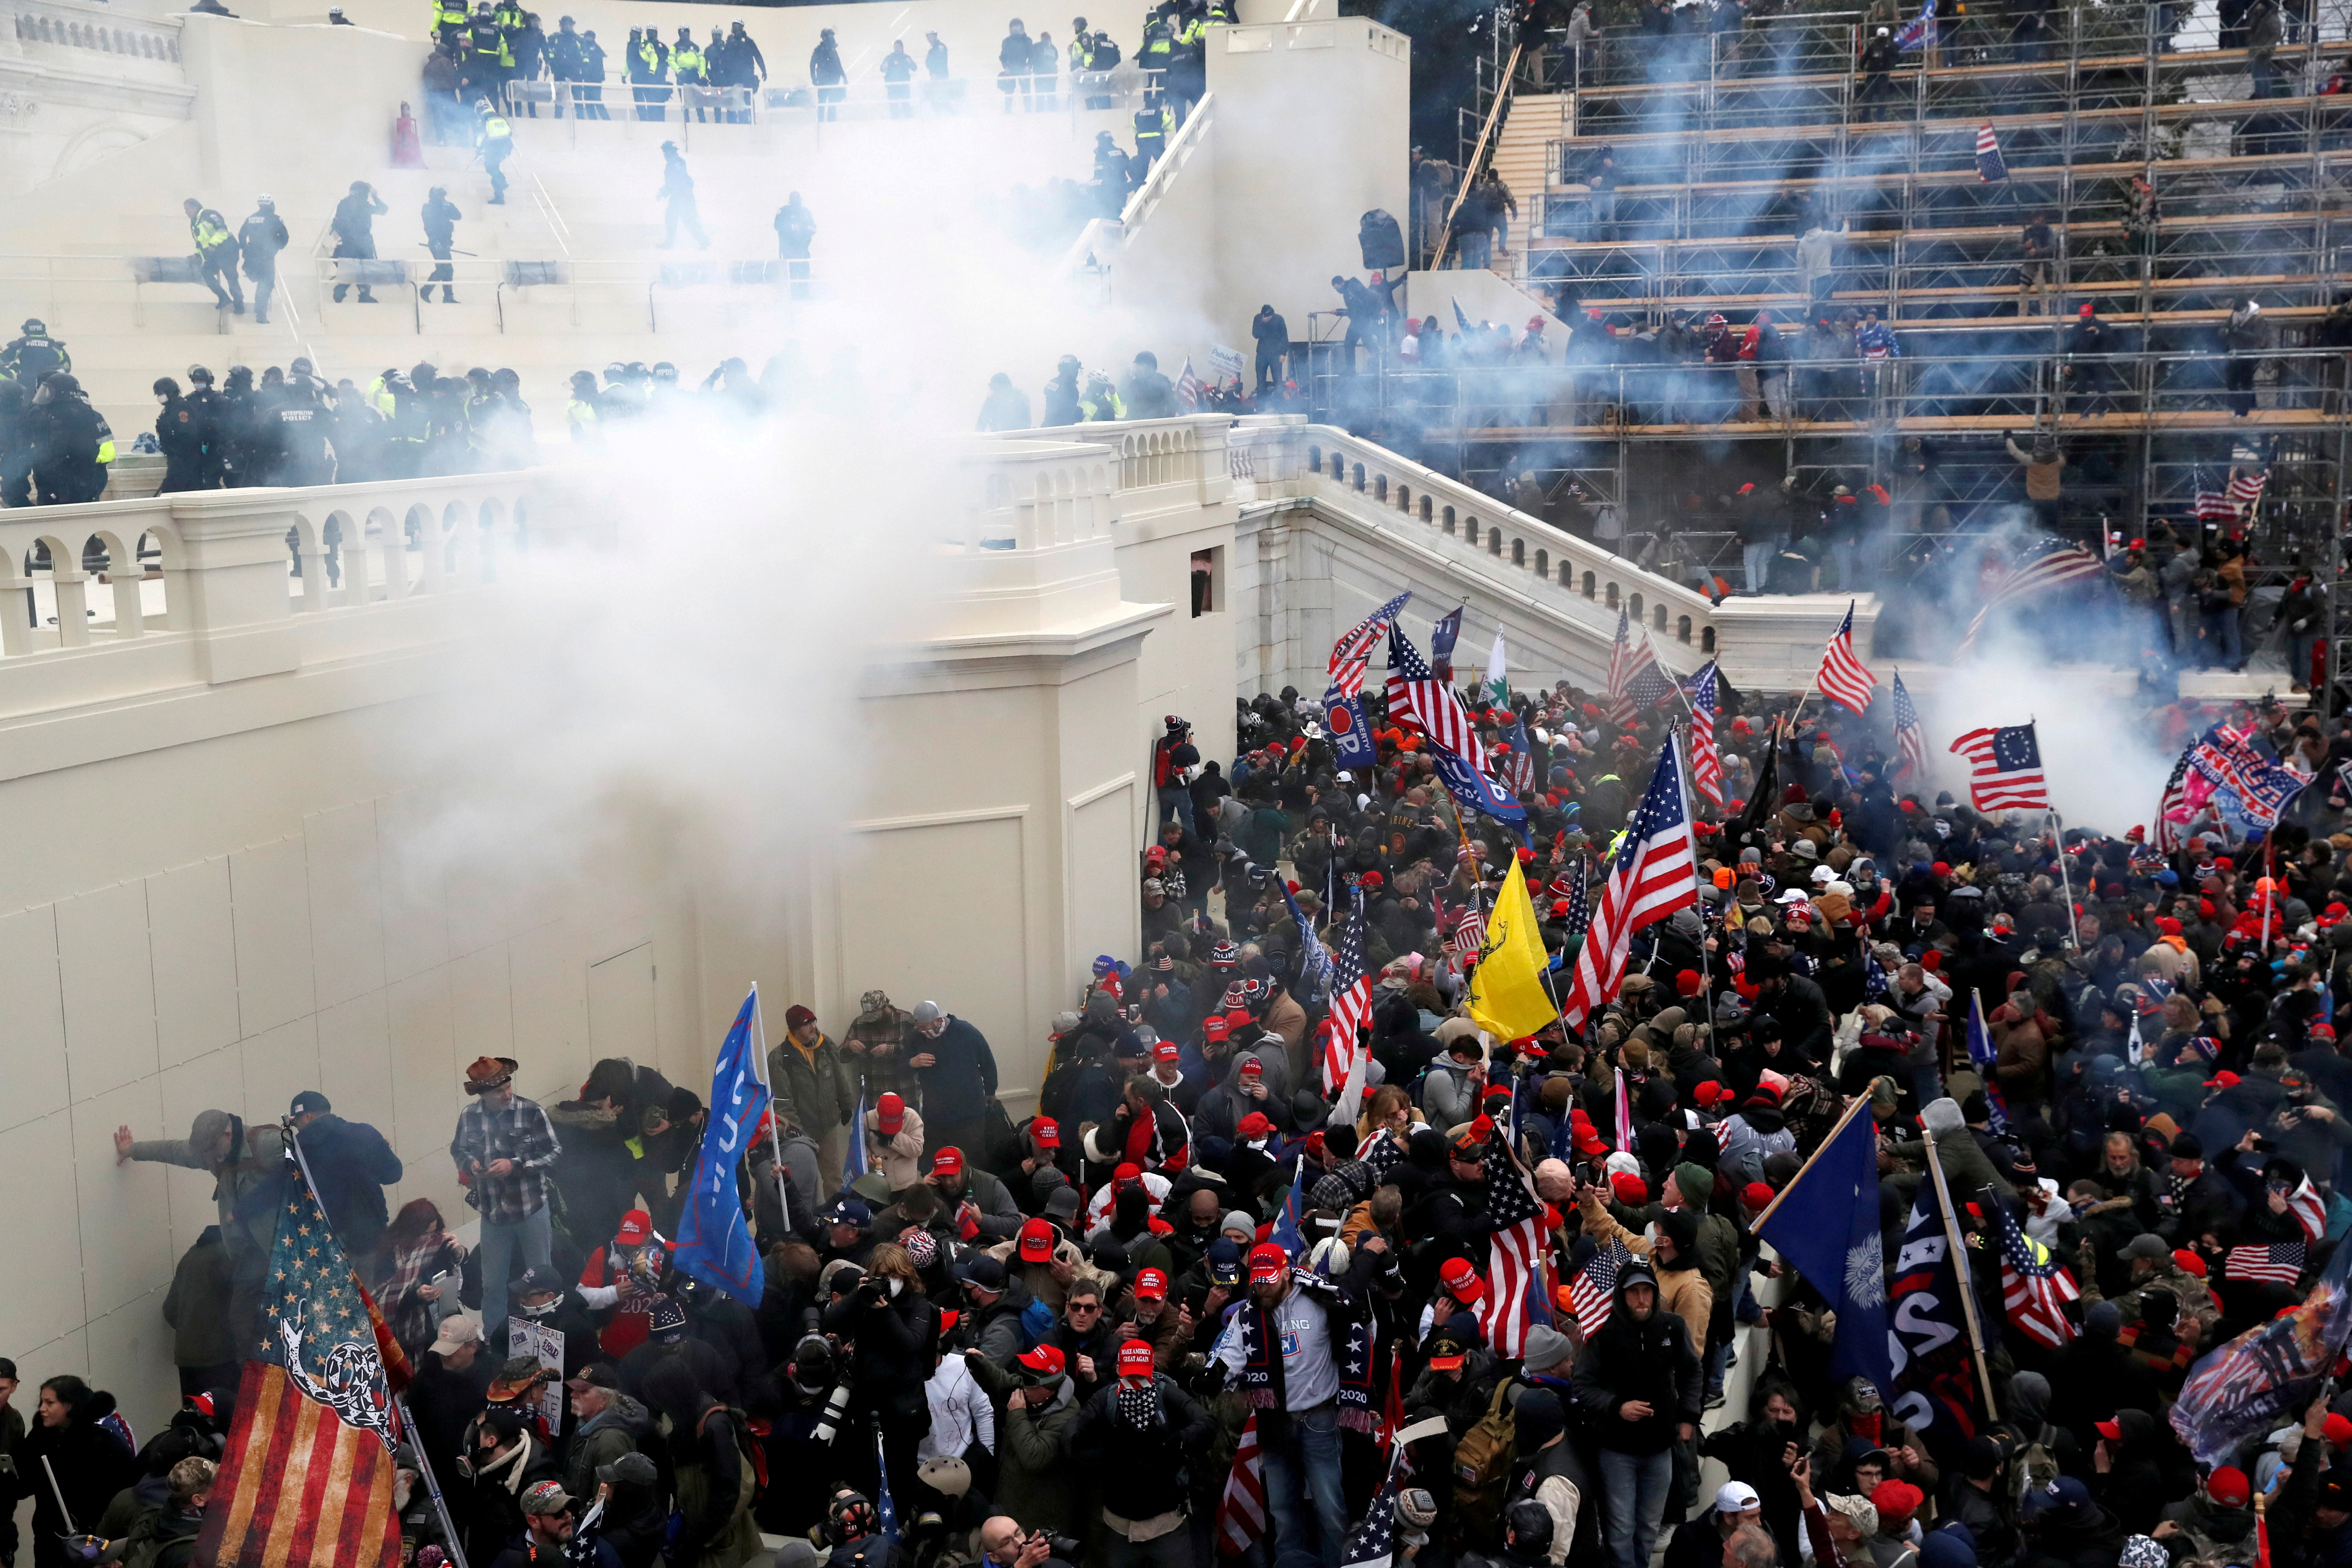 Police release tear gas into a crowd of pro-Trump protesters during clashes at a rally to contest the certification of the 2020 U.S. presidential election results by the U.S. Congress, at the U.S. Capitol Building in Washington, U.S, January 6, 2021. REUTERS/Shannon Stapleton/File Photo